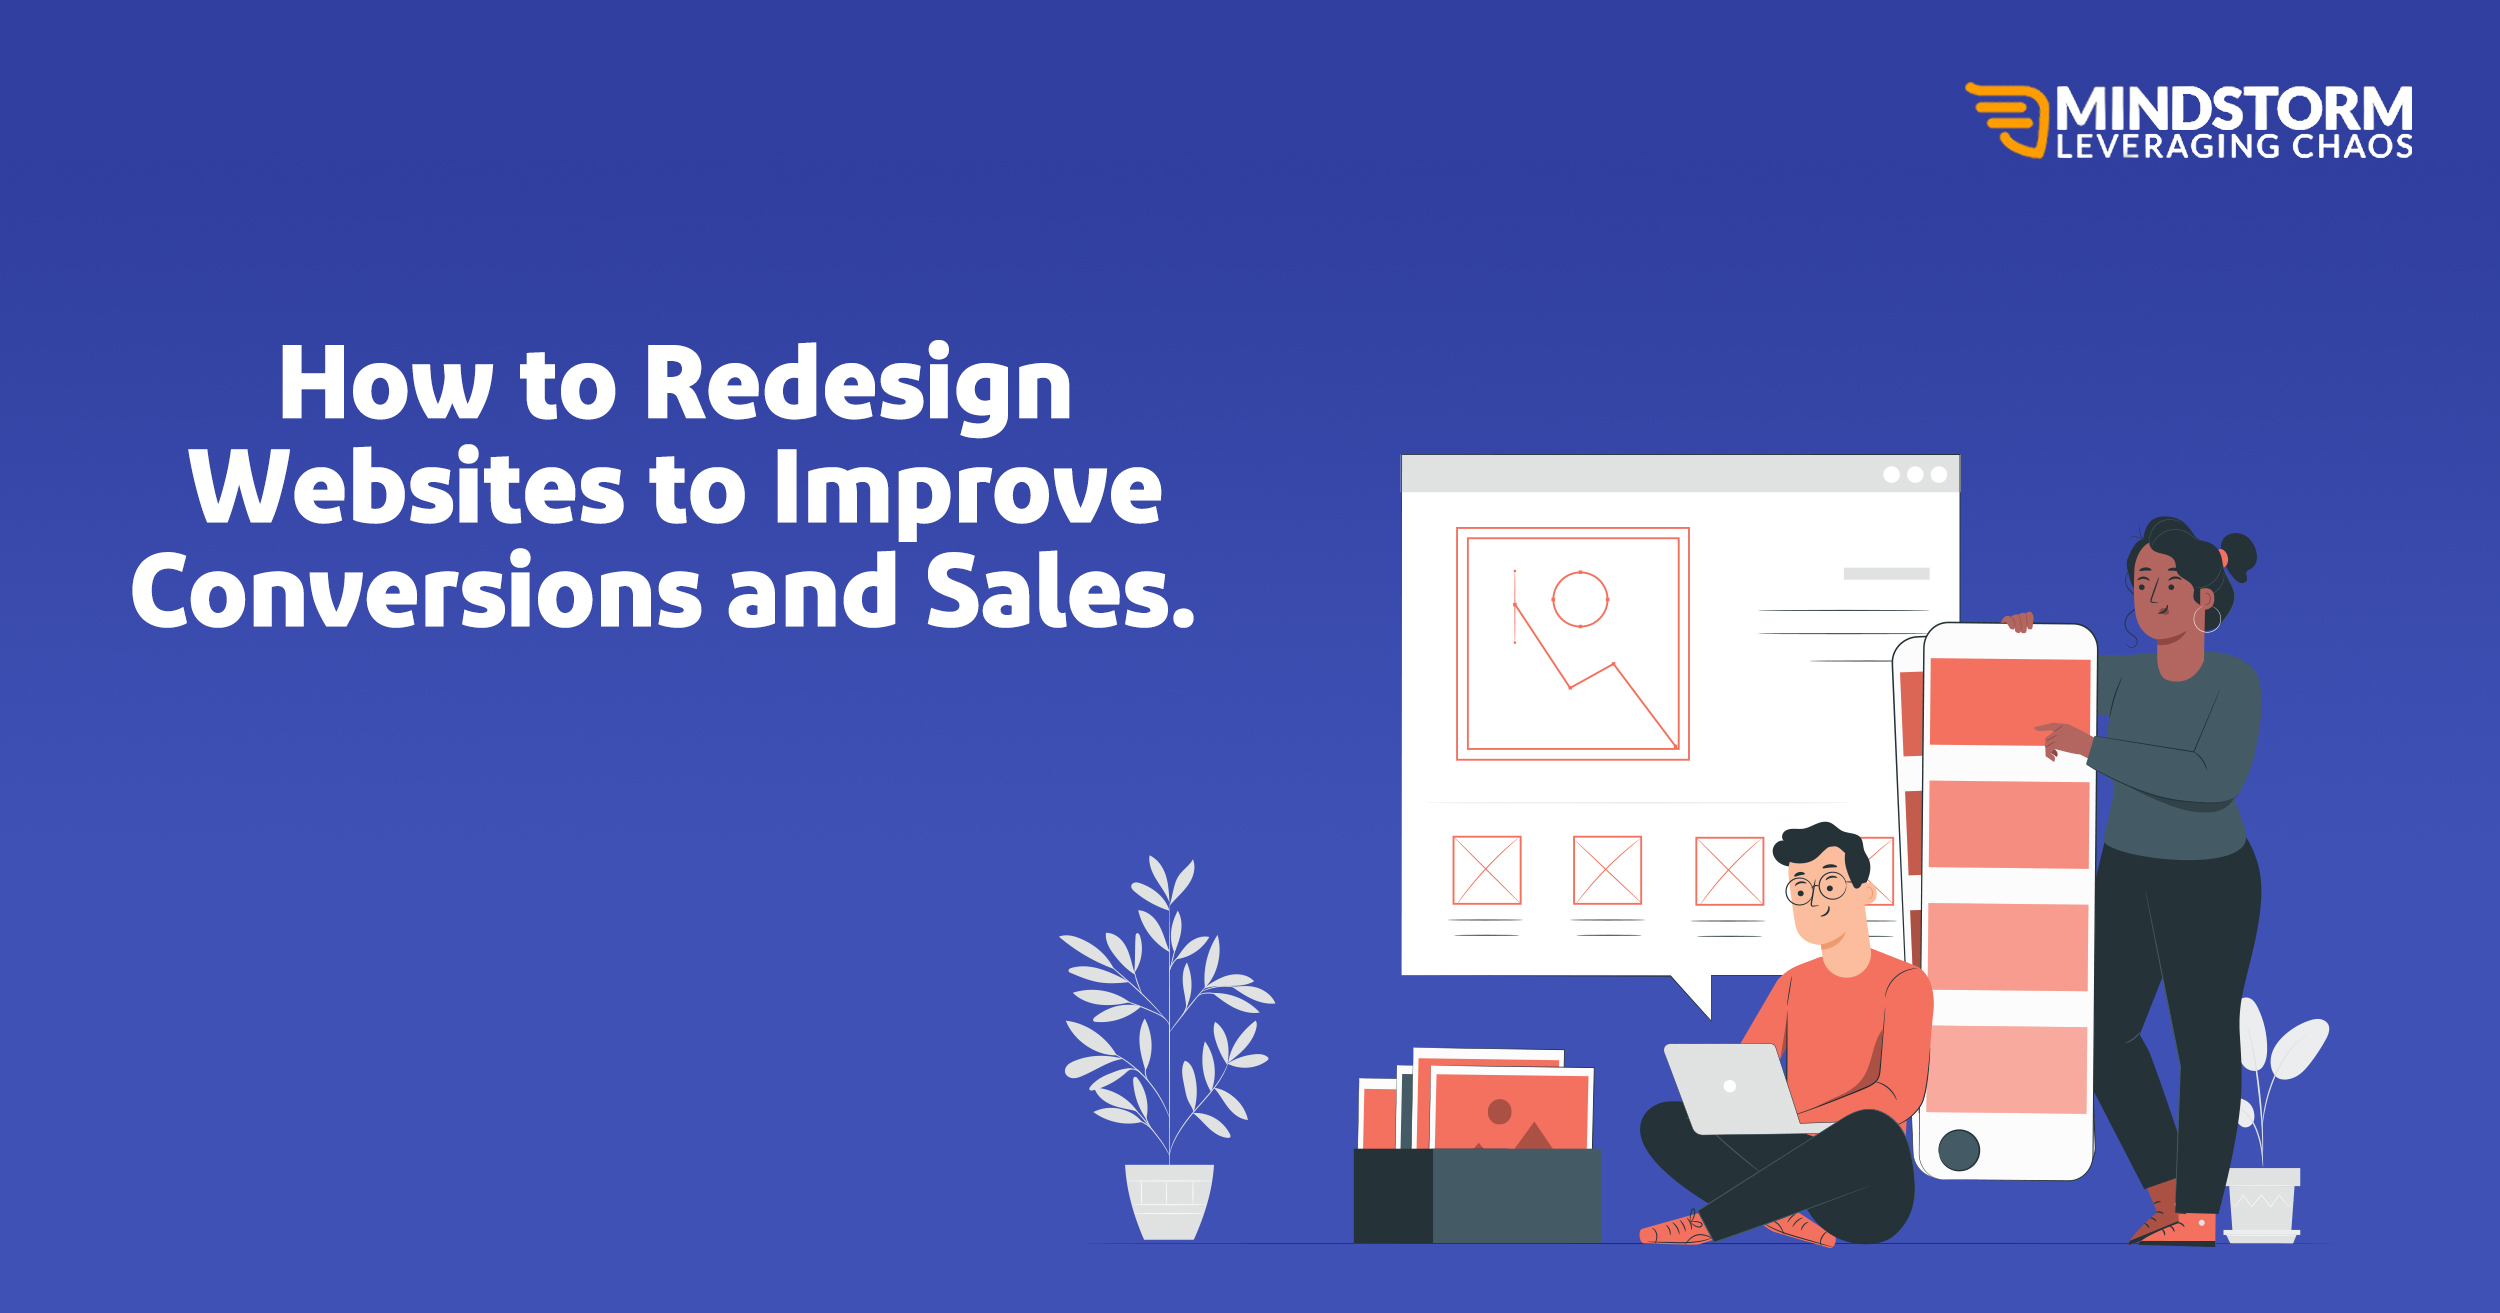 How to Redesign Websites to Improve Conversions and Sales